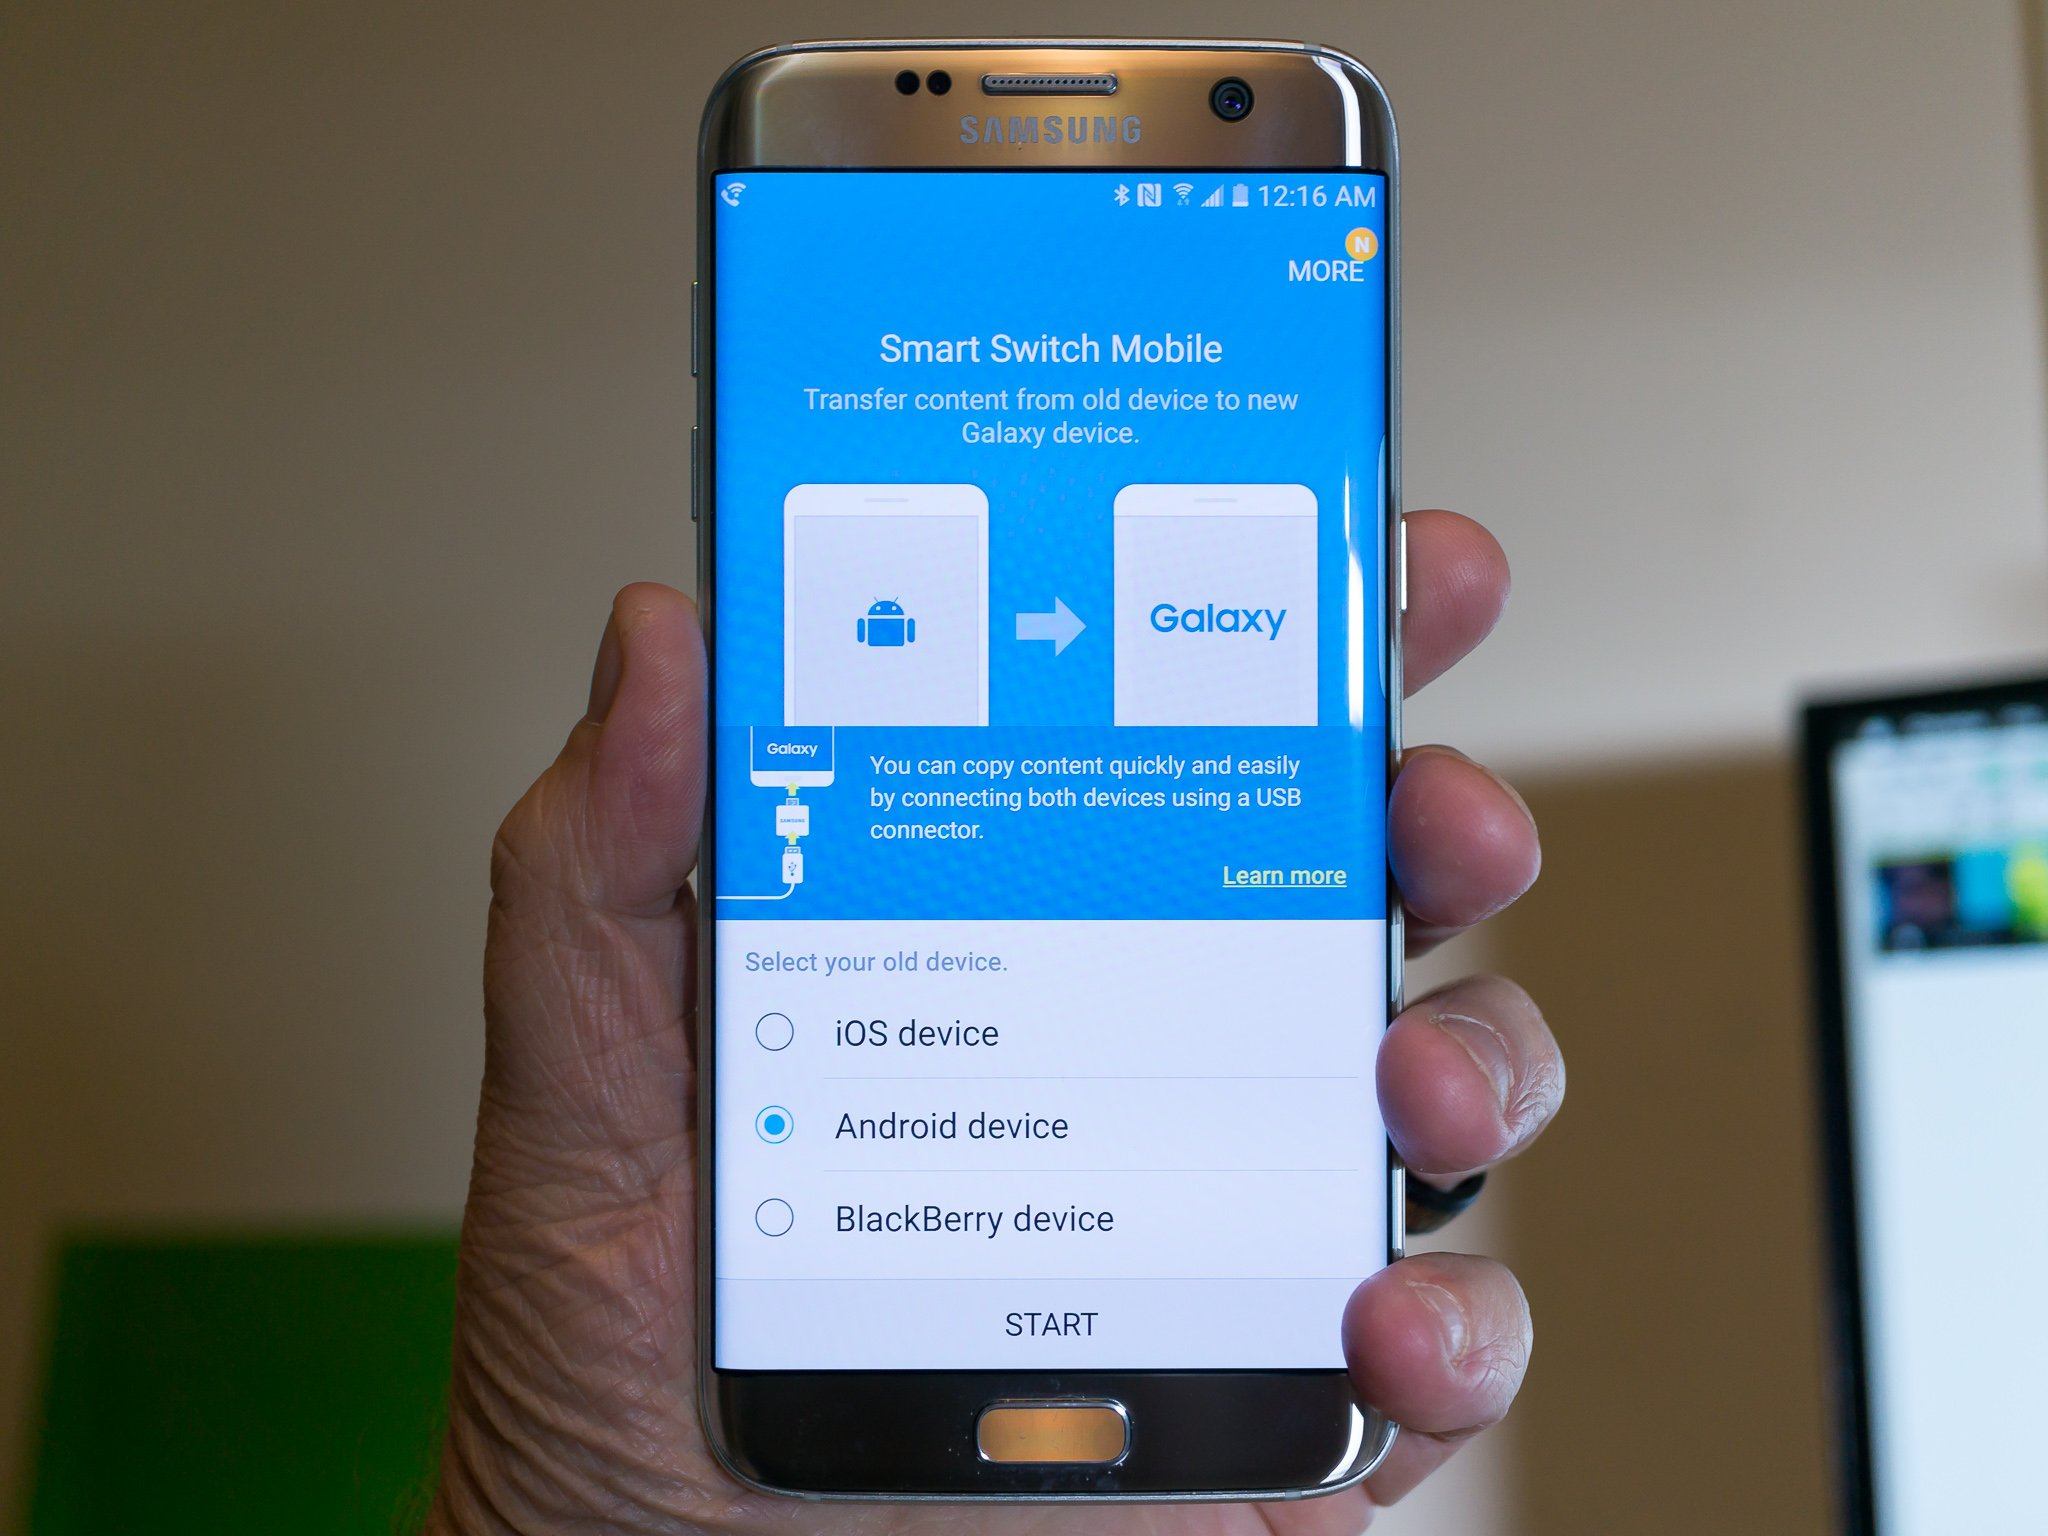 samsung smart switch mobile manual